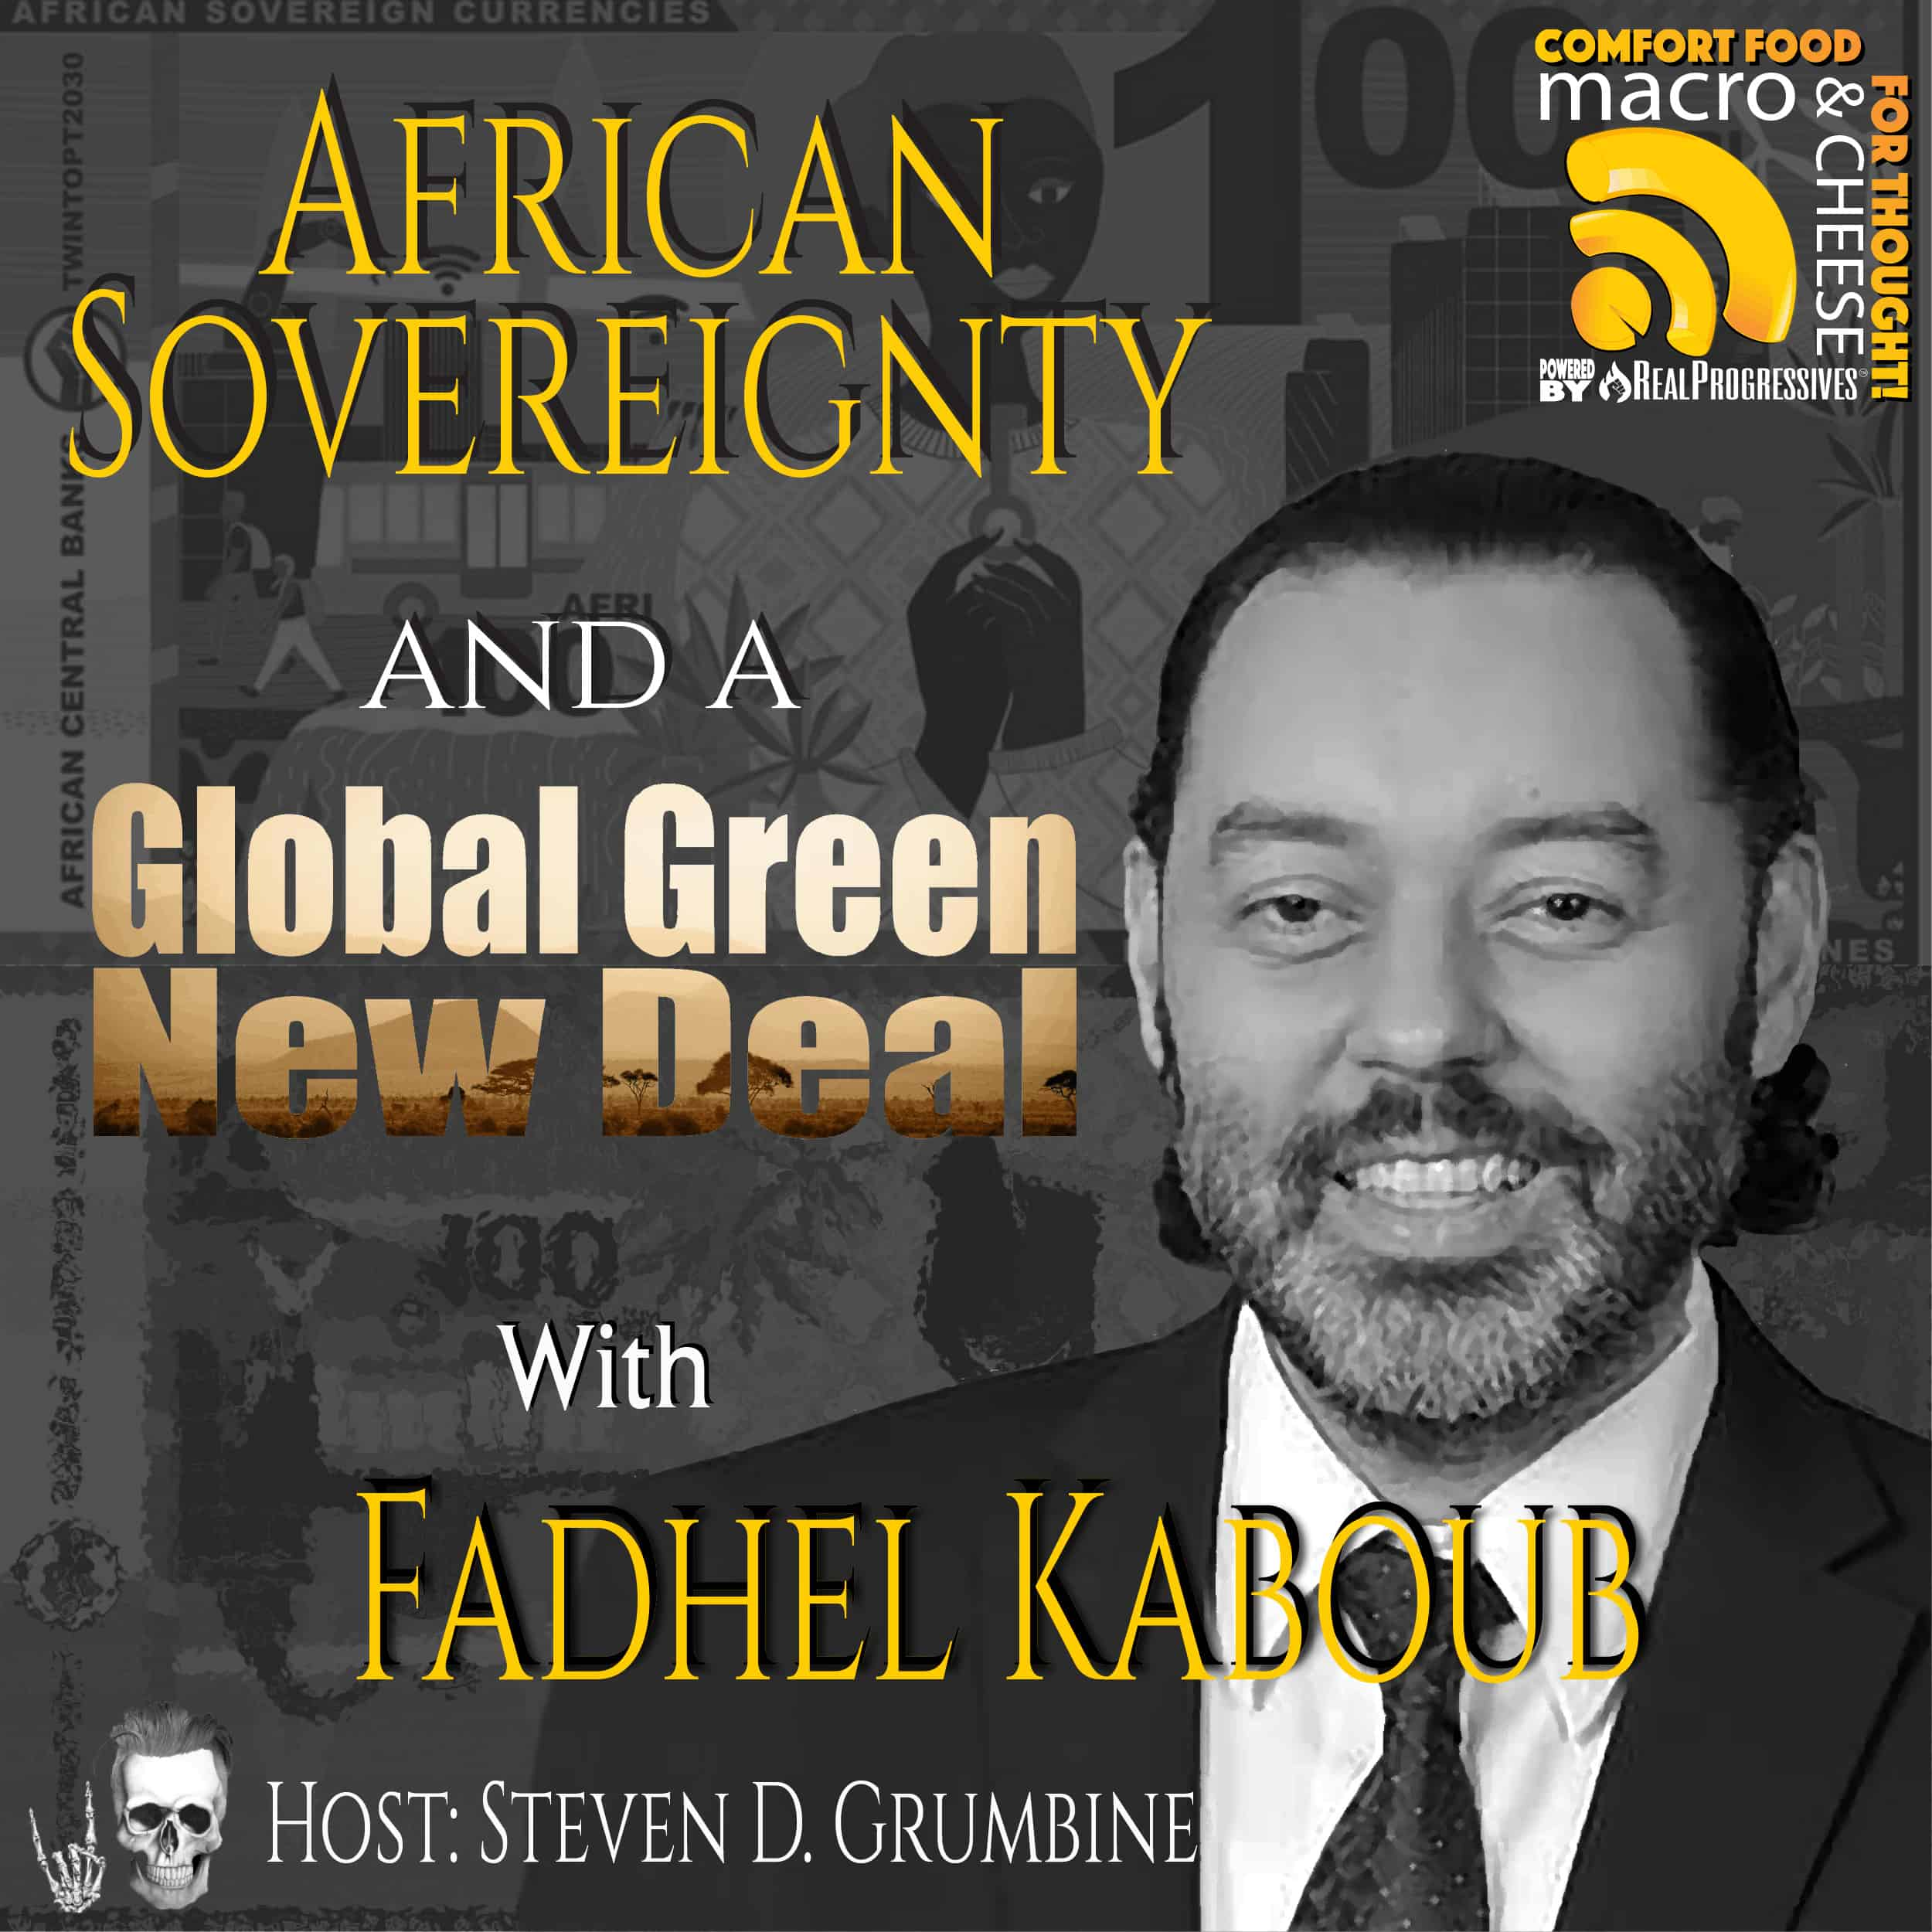 Episode 84 – African Sovereignty and a Global Green New Deal with Fadhel Kaboub